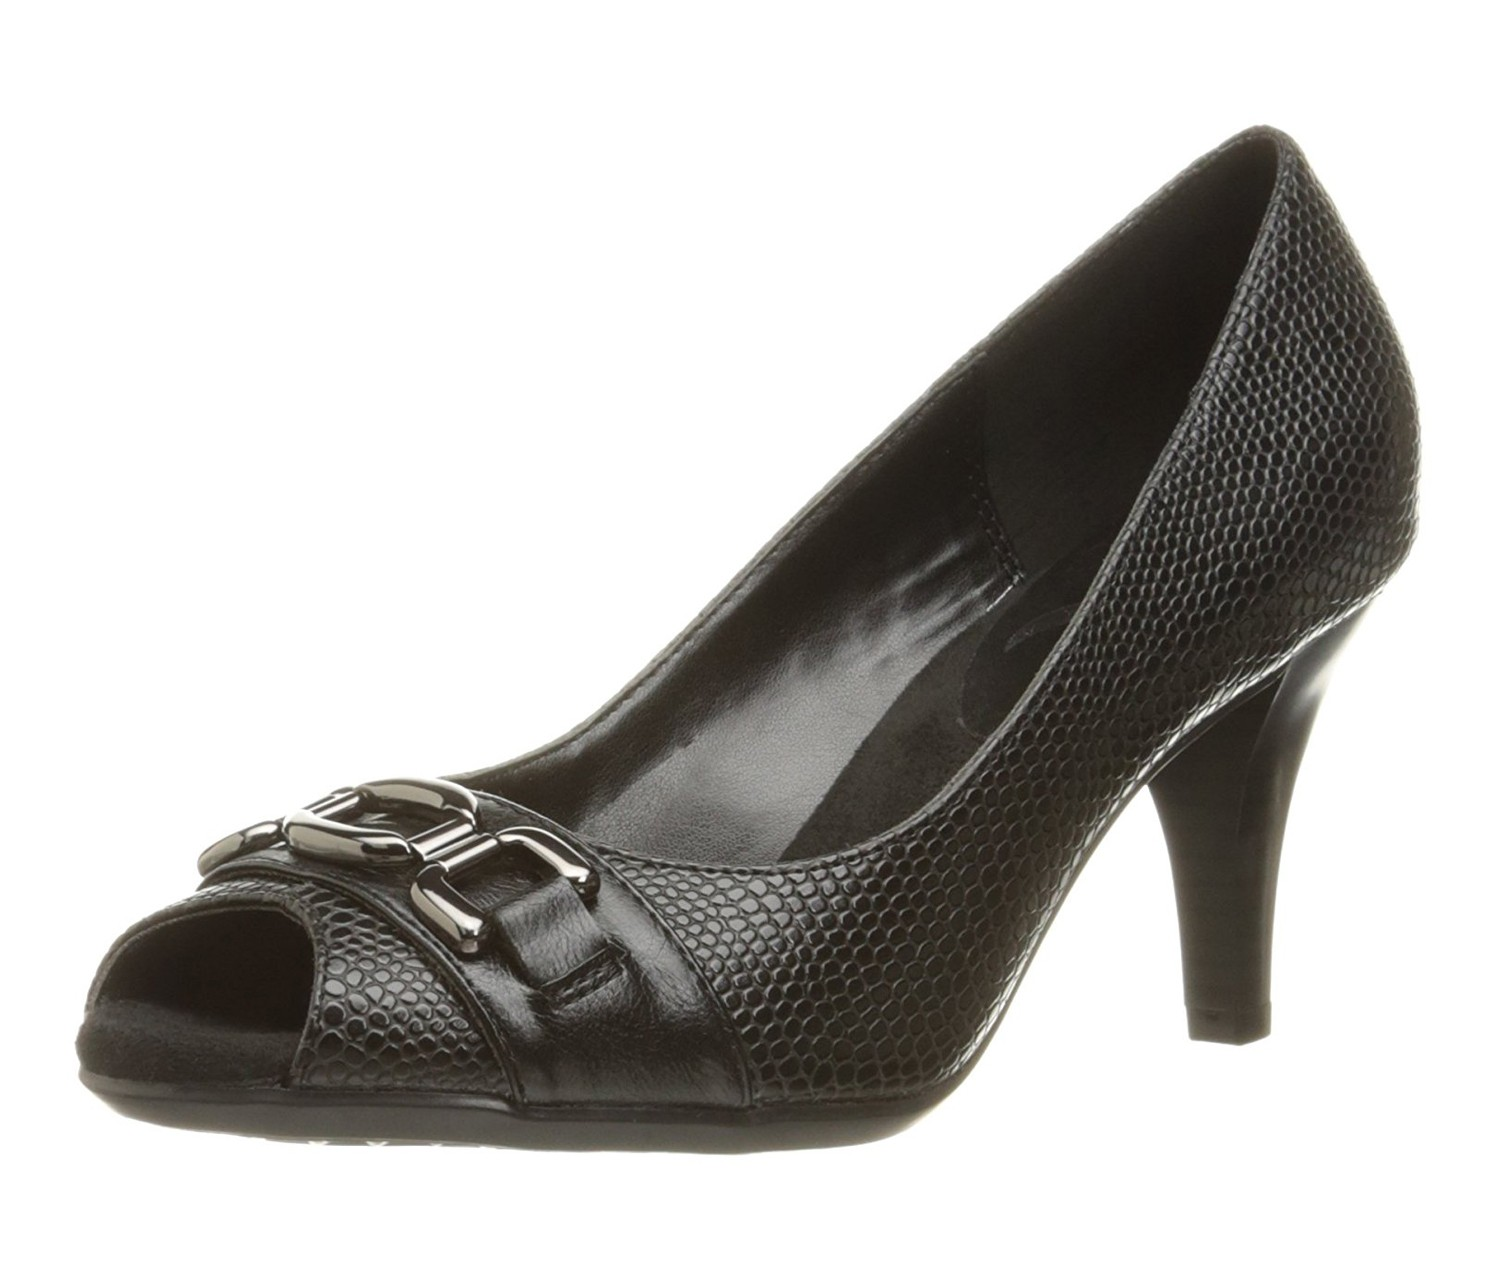 Shop Aerosoles Aerosoles Women's Good Lux Dress Pump, Black